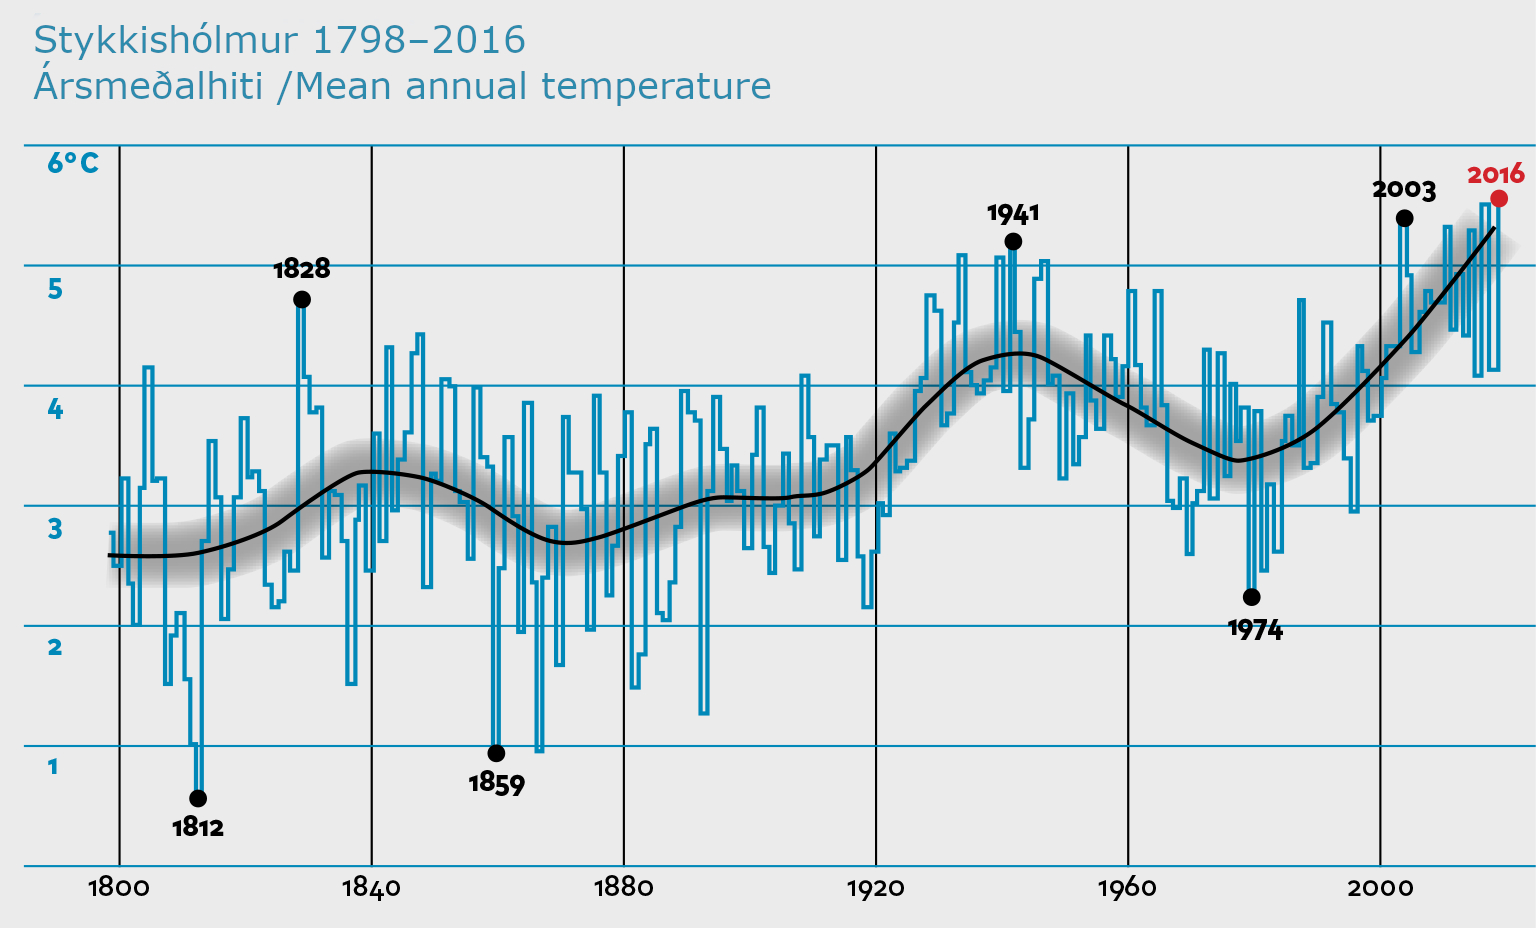 Average annual temperature in Stykkishólmur 1798–2017. Source: Icelandic Meteorological Office.